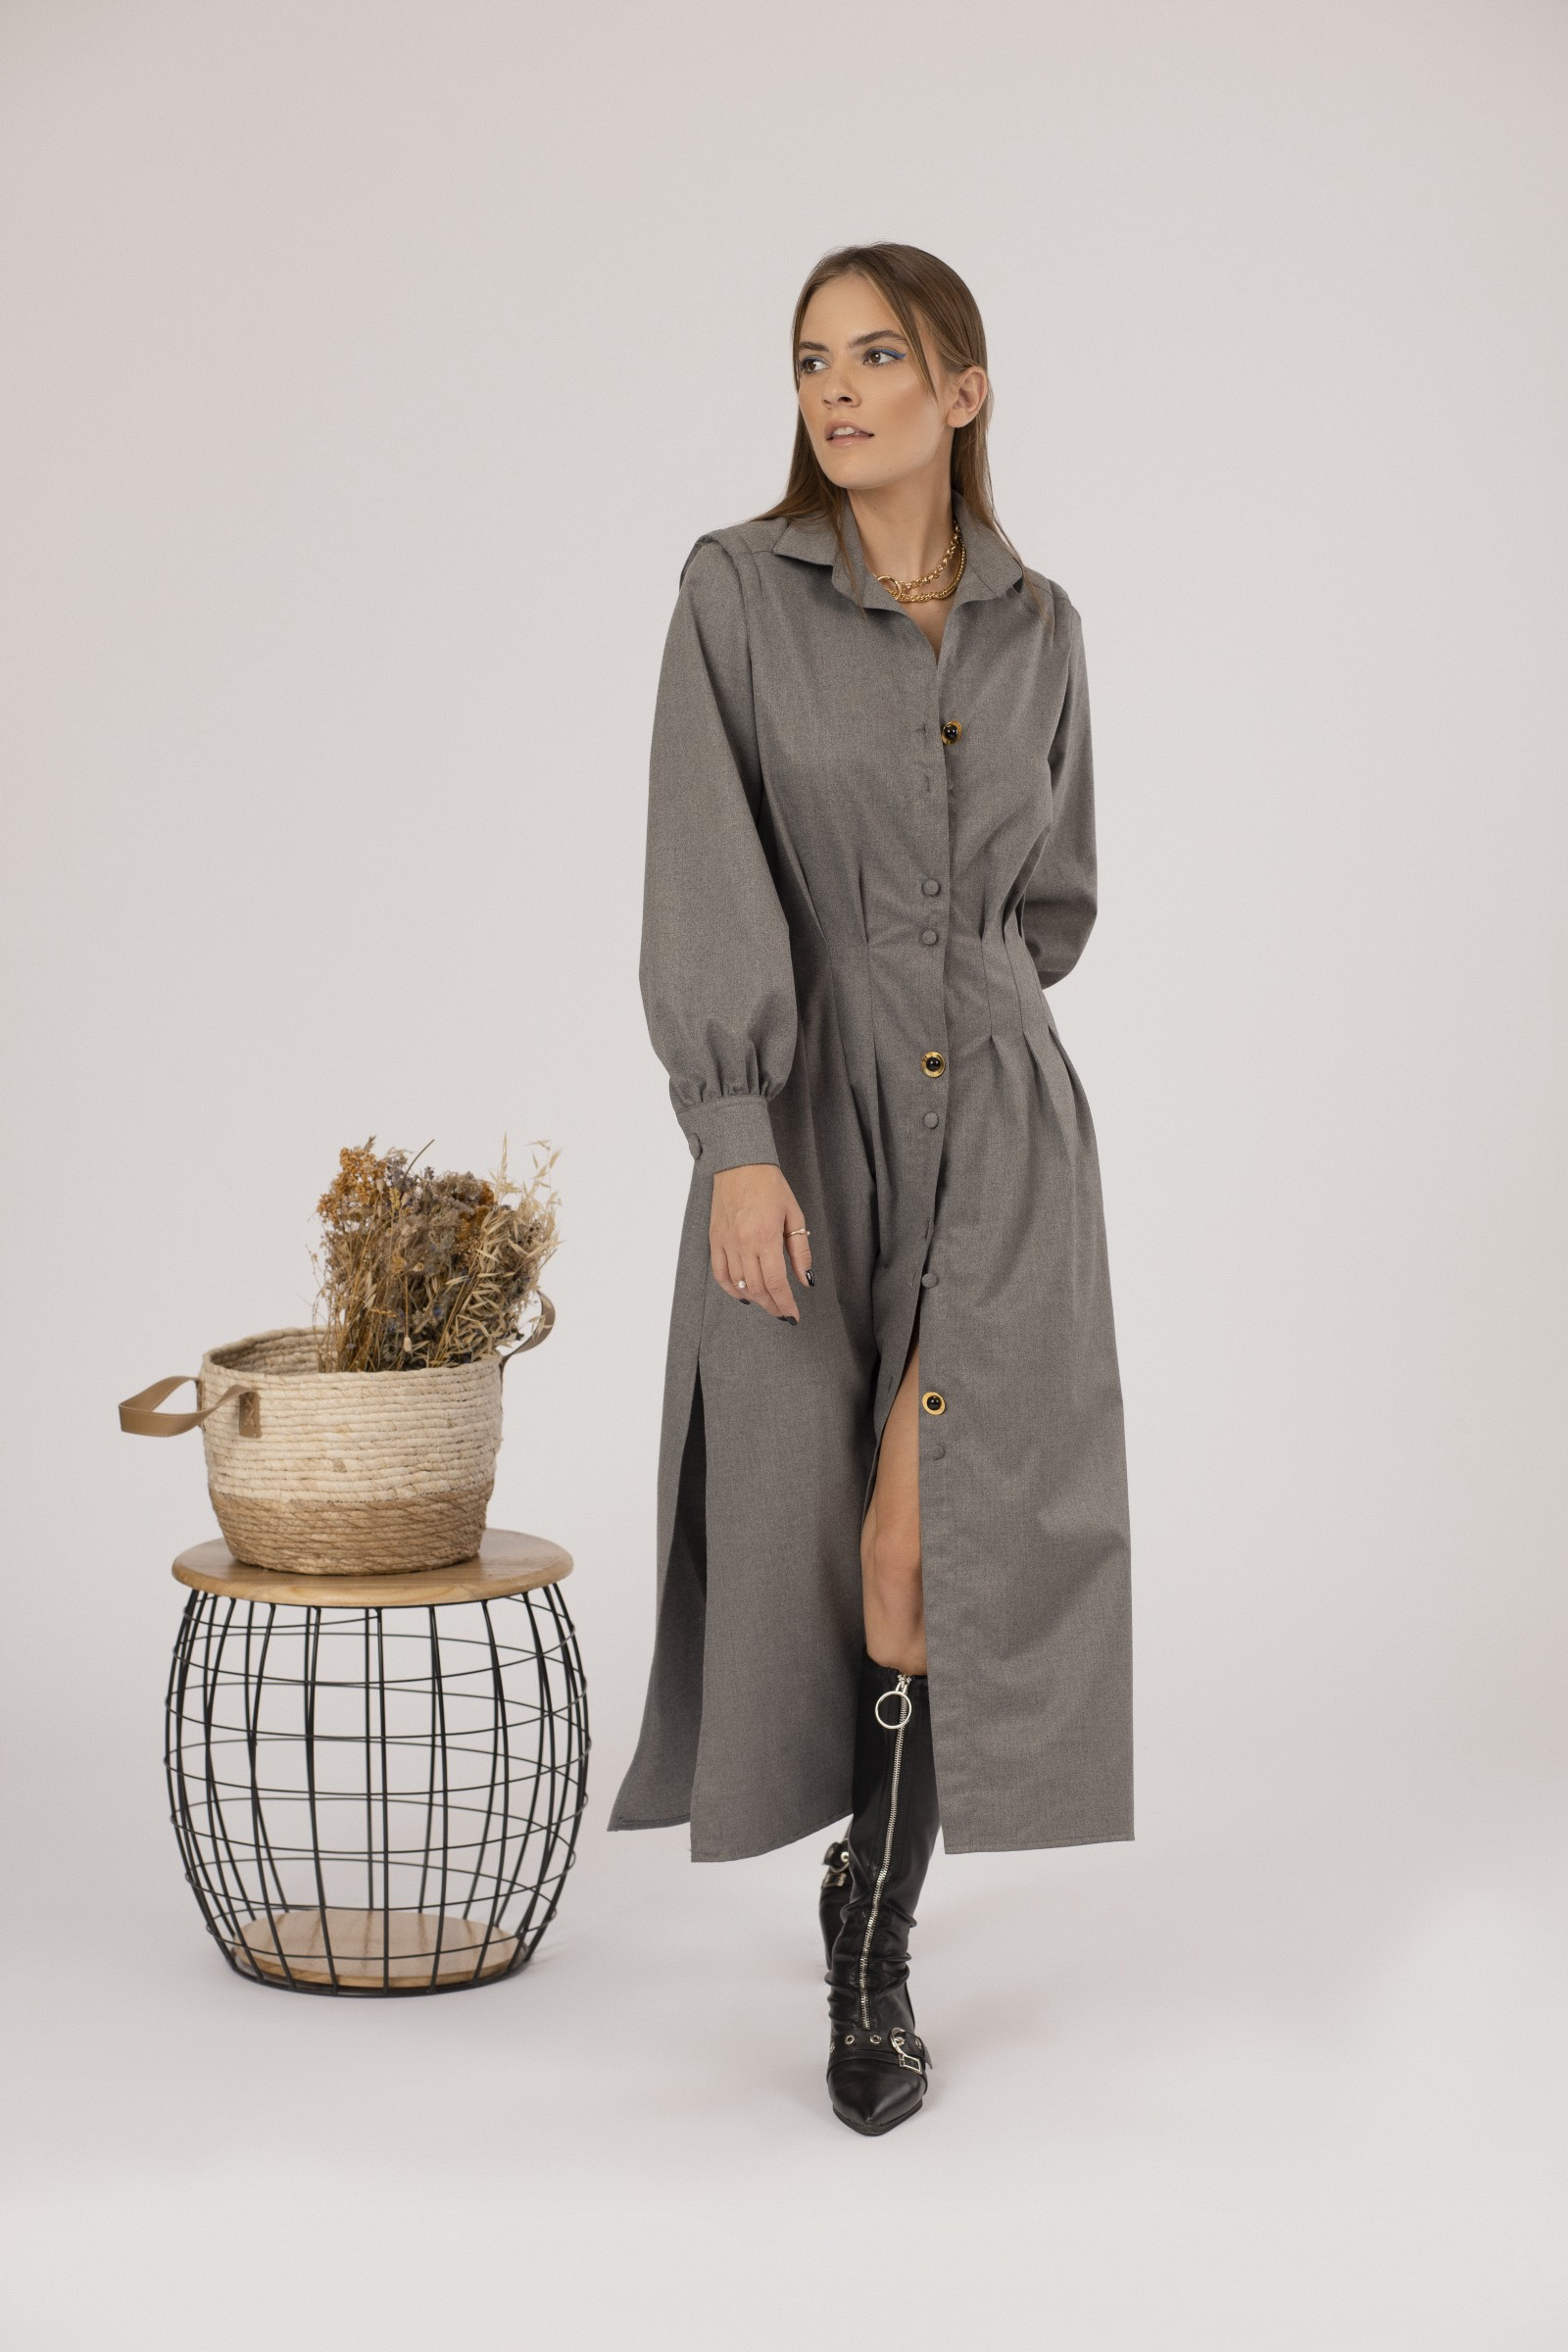 Grey wool shirt dress with side pockets